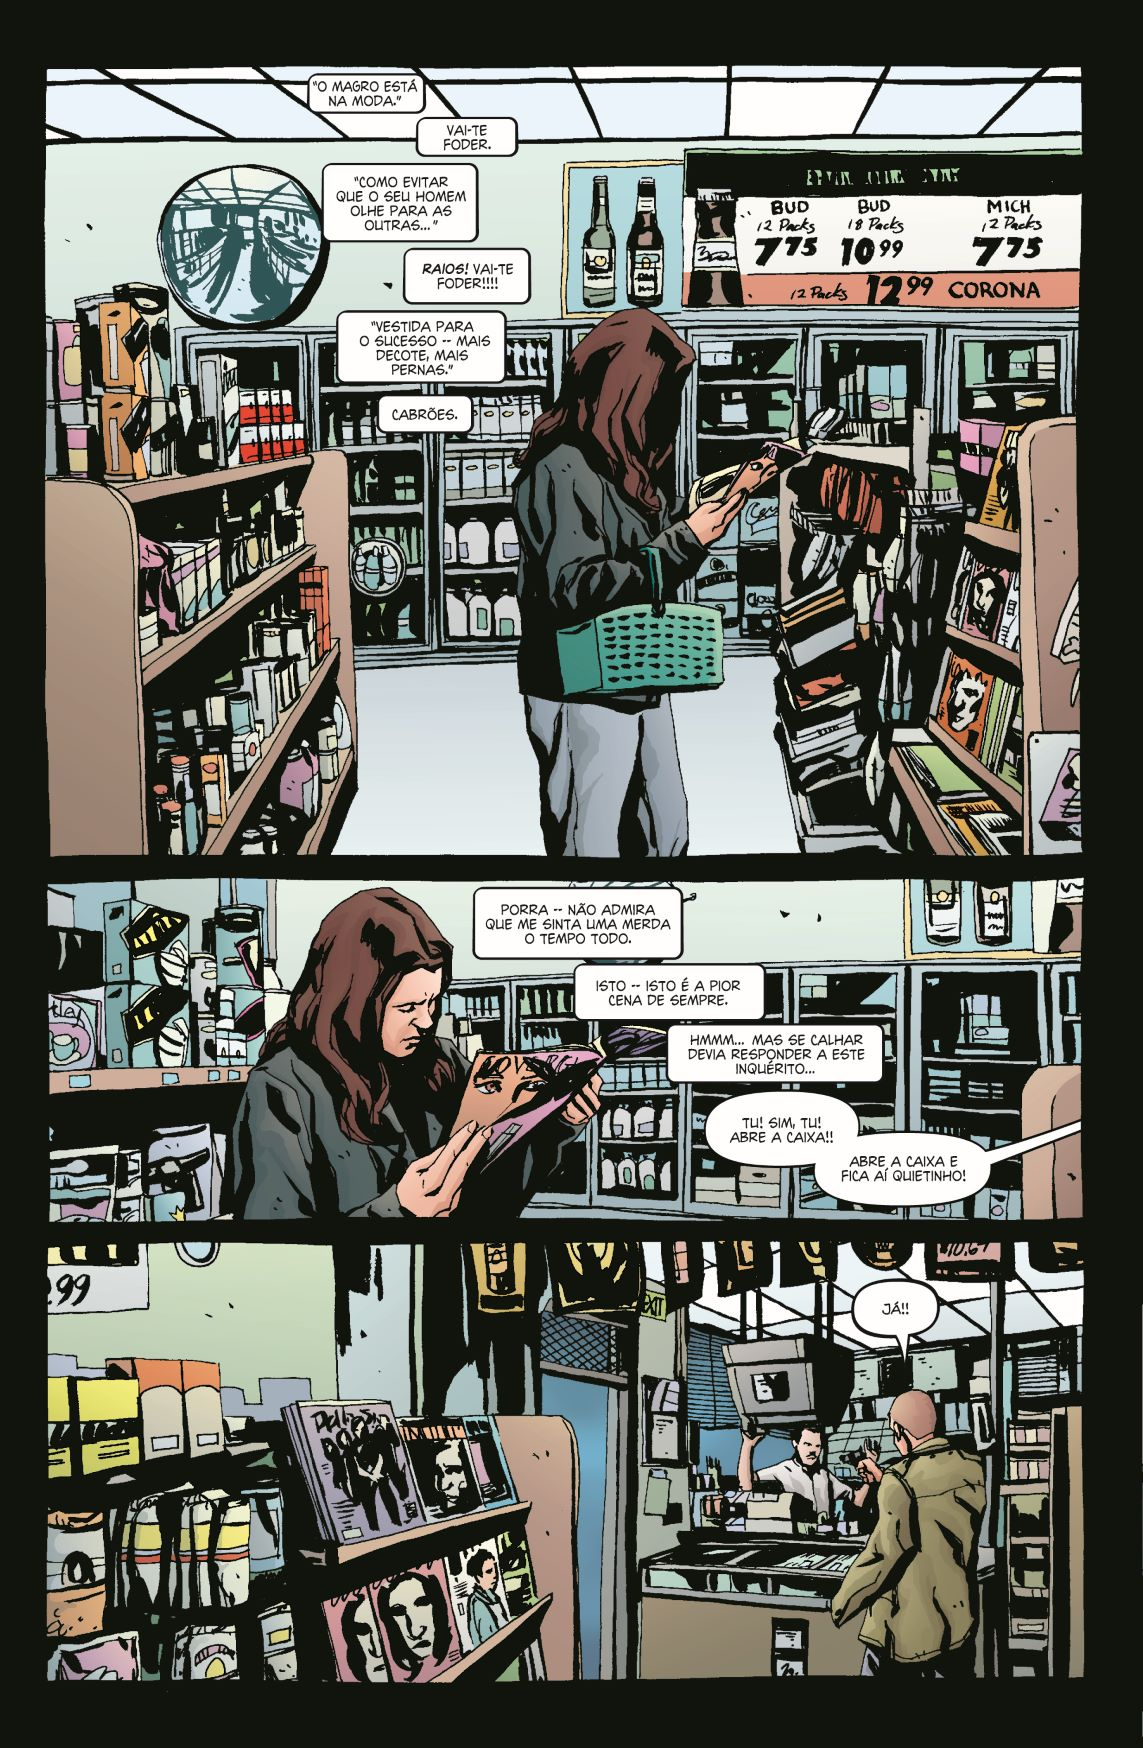 Jessica Jones ALIAS vol. 3